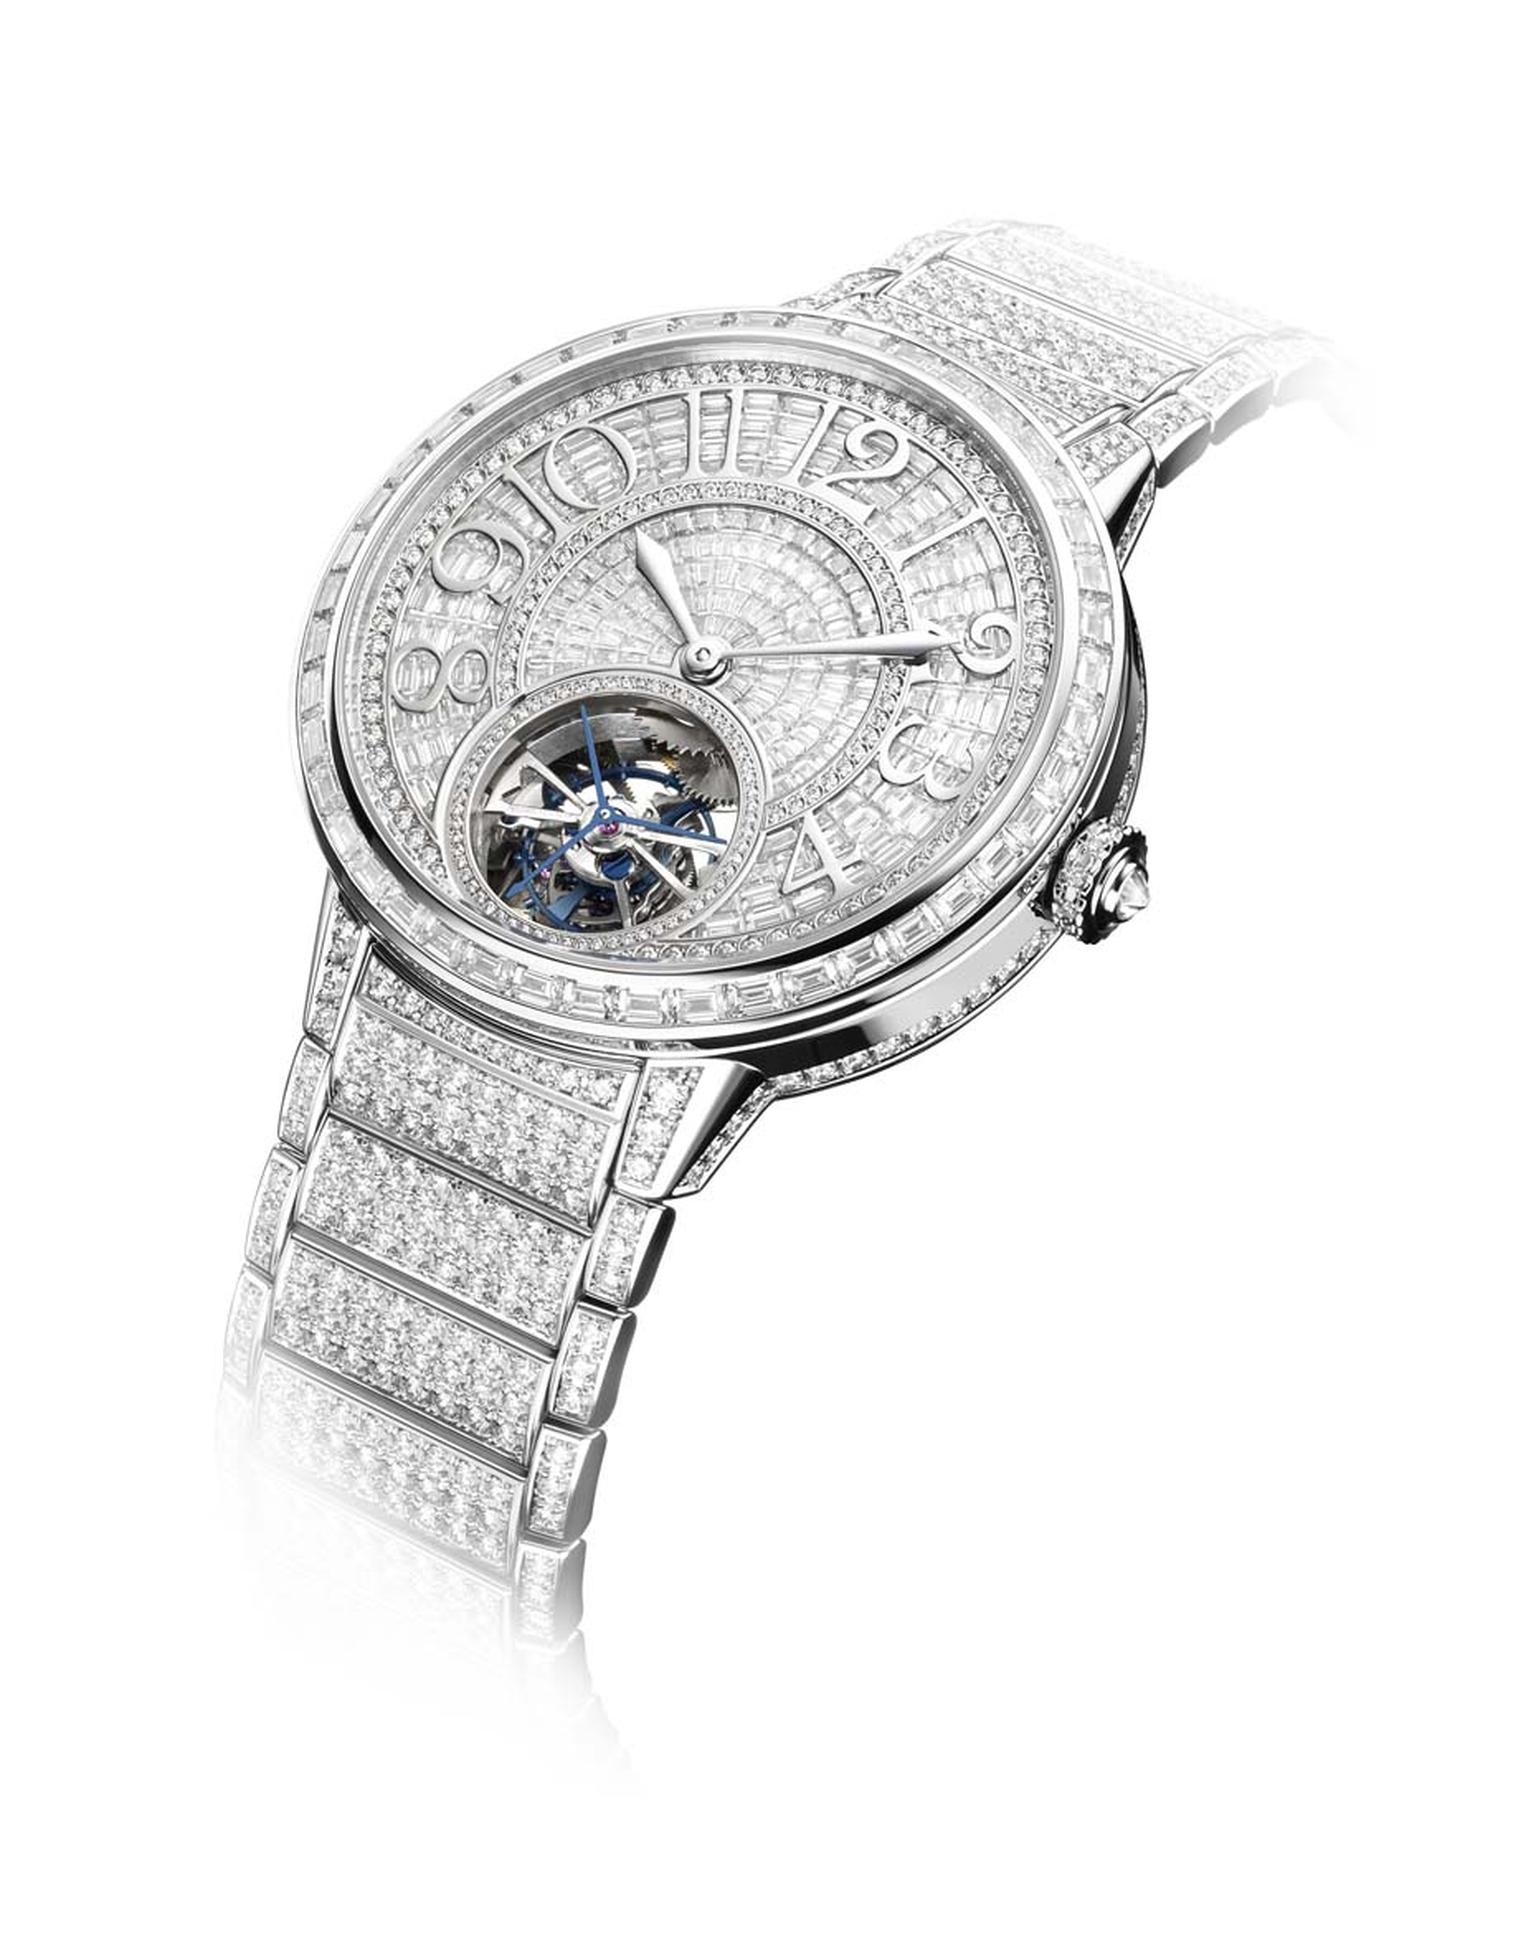 Jaeger-LeCoultre Hybris Artistica Collection Rendez-Vous Tourbillon haute-joaillerie watch has been wrapped in a coat of baguette and brilliant diamonds using the Rock-Setting technique, which hides the underlying metal supports